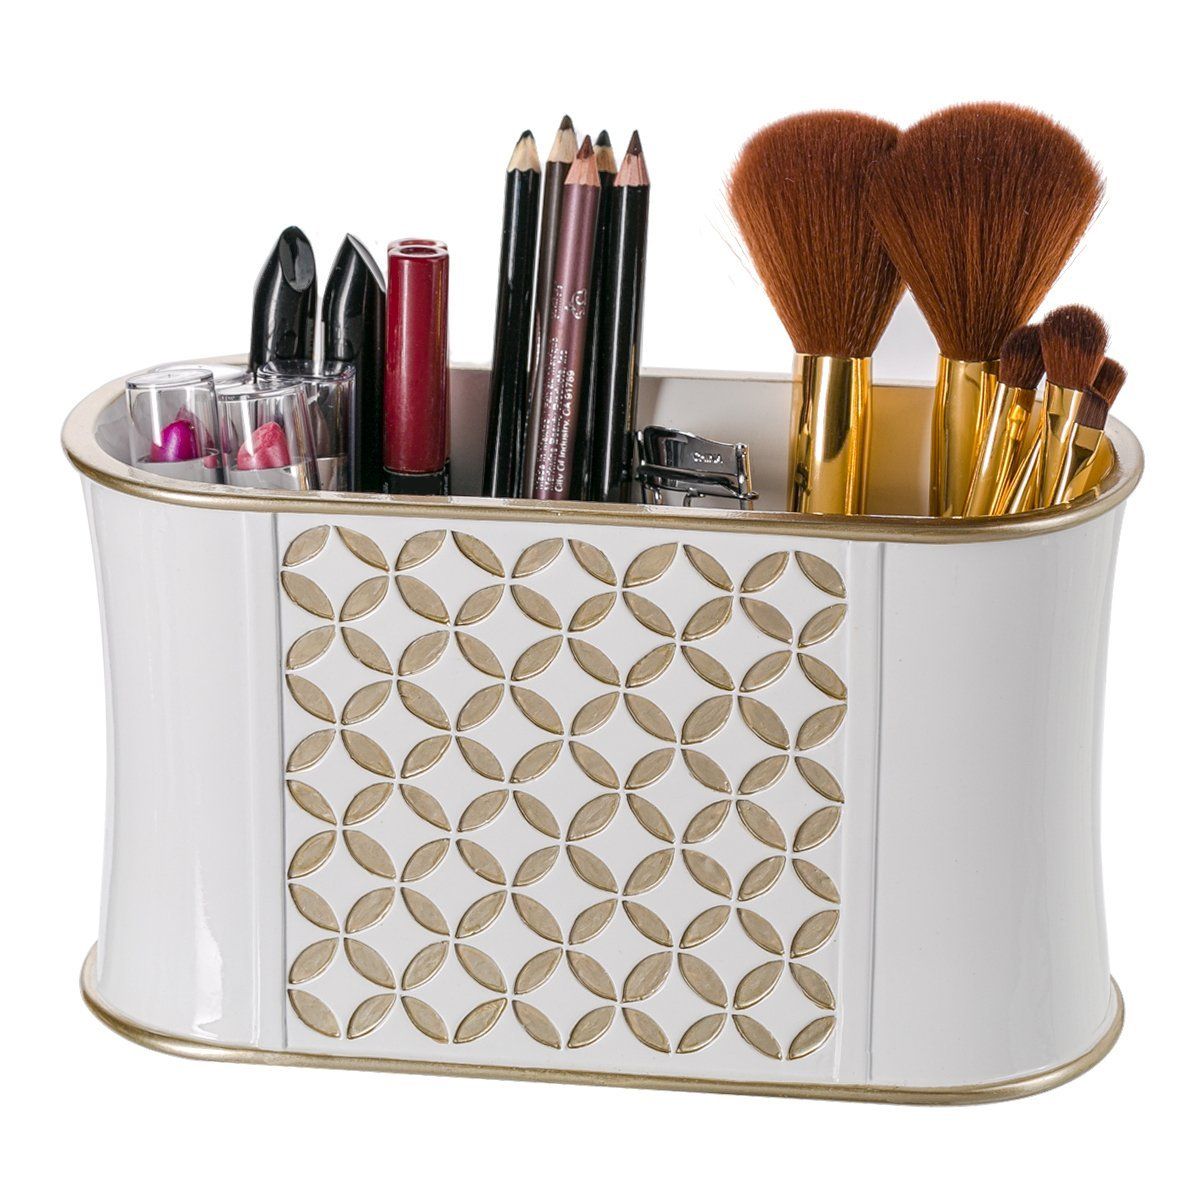 Brushed Nickel Bathroom Organizer, Cosmetic Organizer, 3-Compartments Vanity Organizers- Countertop Makeup Brushes Caddy/ Hair Accessories Storage- Decorative Bath Organization- Gift Packaged Creative Scents BOB-44280